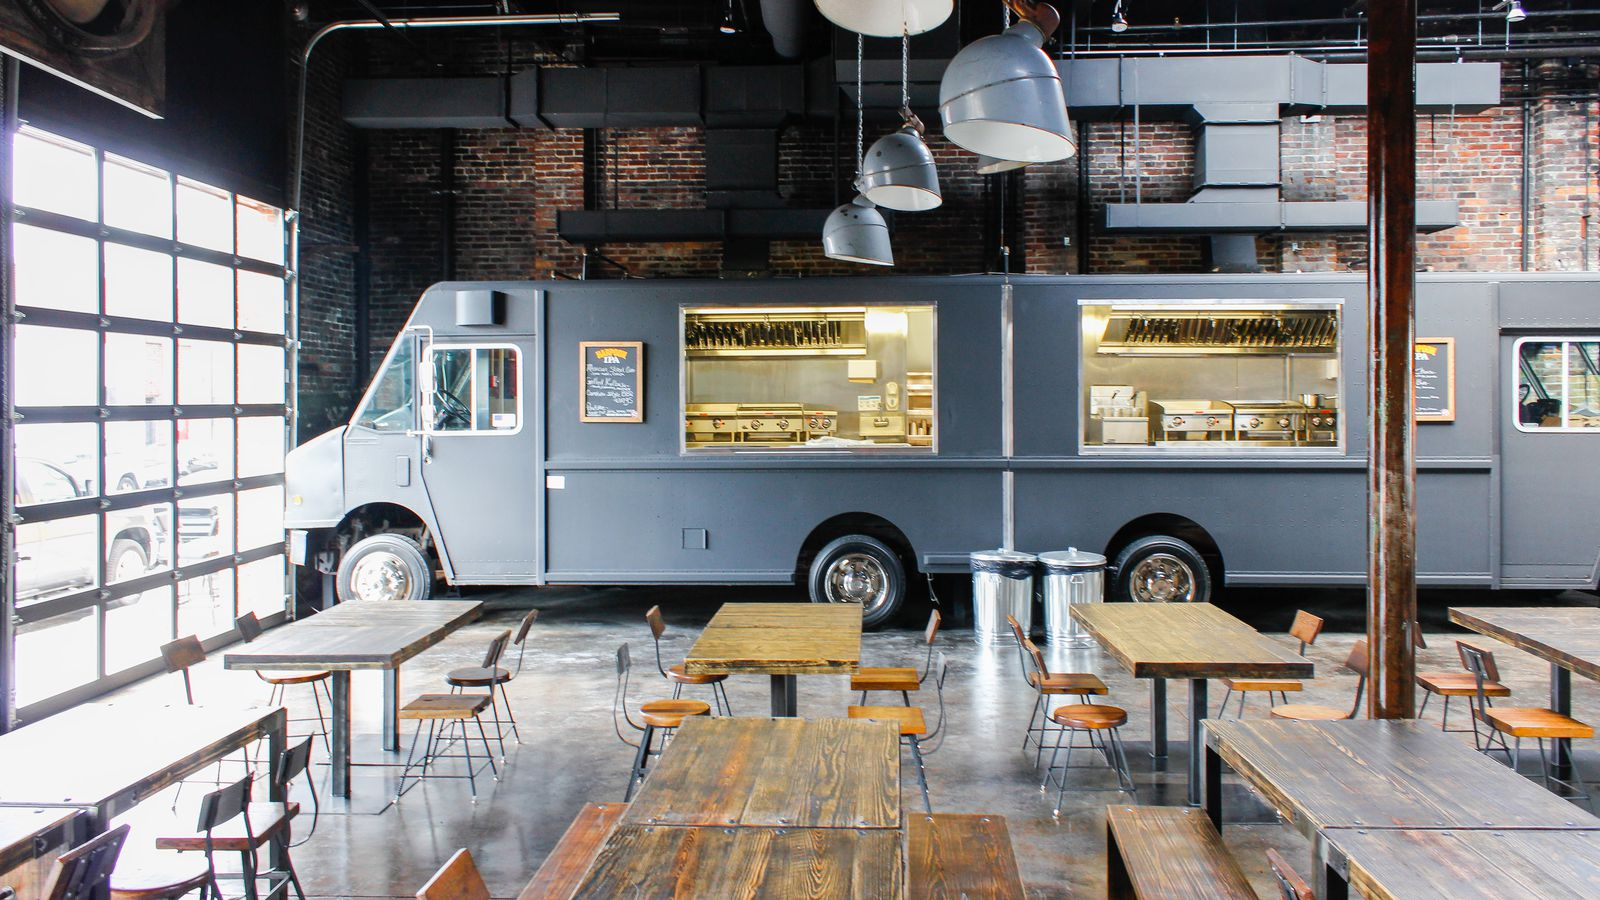 Settle Onto a Patio and Eat From Indoor Food Trucks This Friday at Coppersmith  Eater Boston